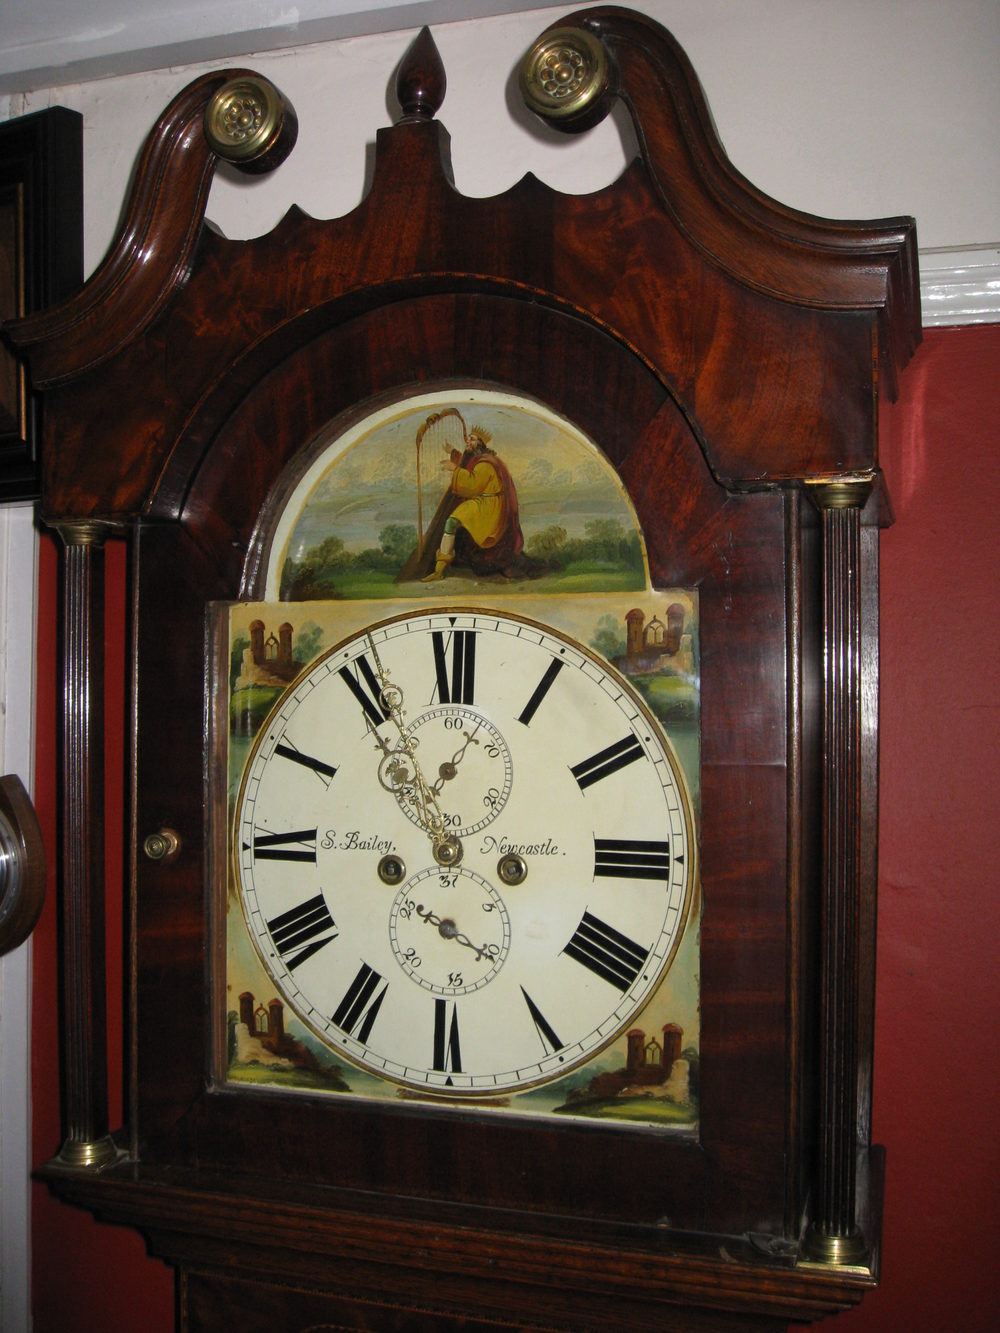 dating longcase clock hands Manufacturers and stockists of high quality british clock spares and clock parts  categories longcase movement clock spares fusee  hands - black £681 (£8.